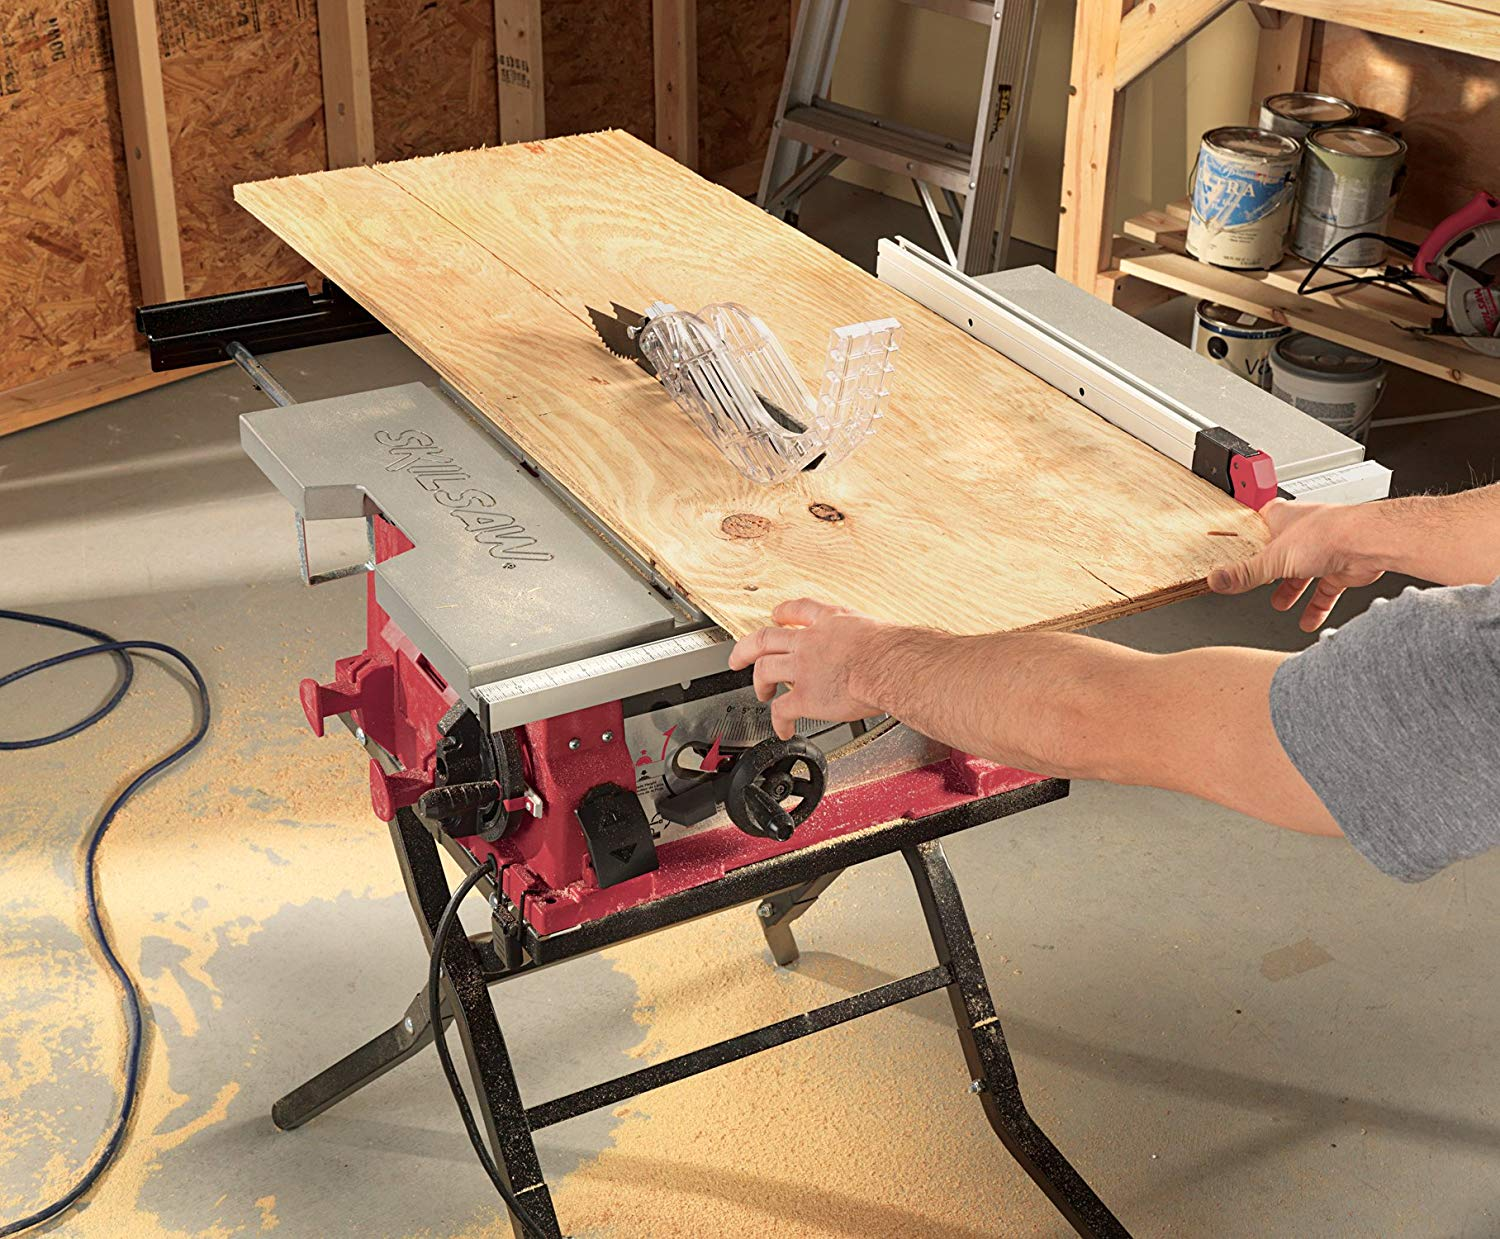 SKIL 10 Inch Folding Stand 3410-02 Table Saw